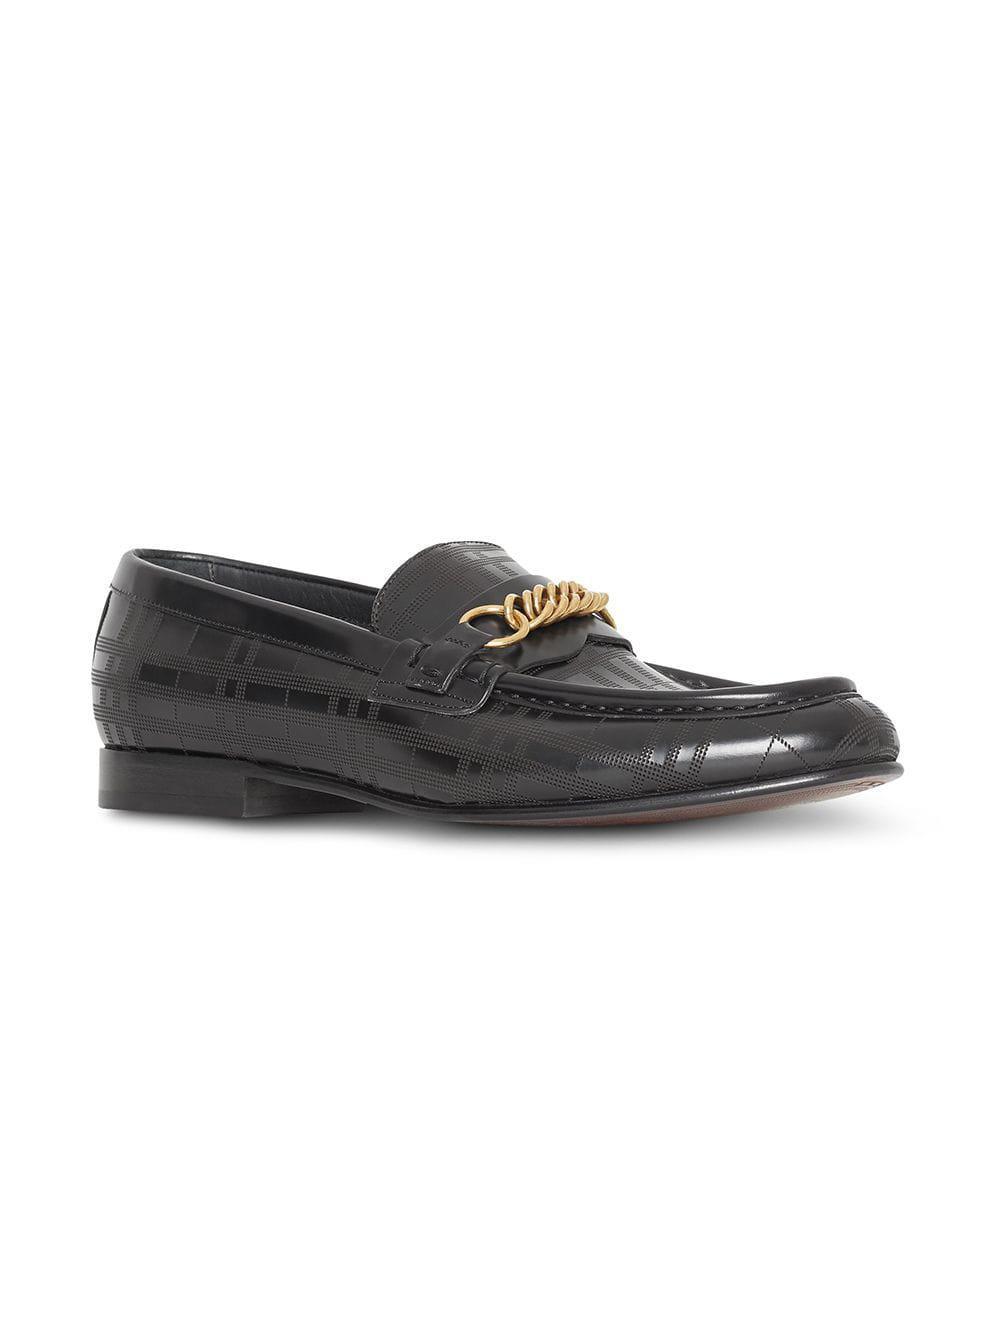 aebed859b91 Lyst - Burberry Perforated Link Loafers in Black for Men